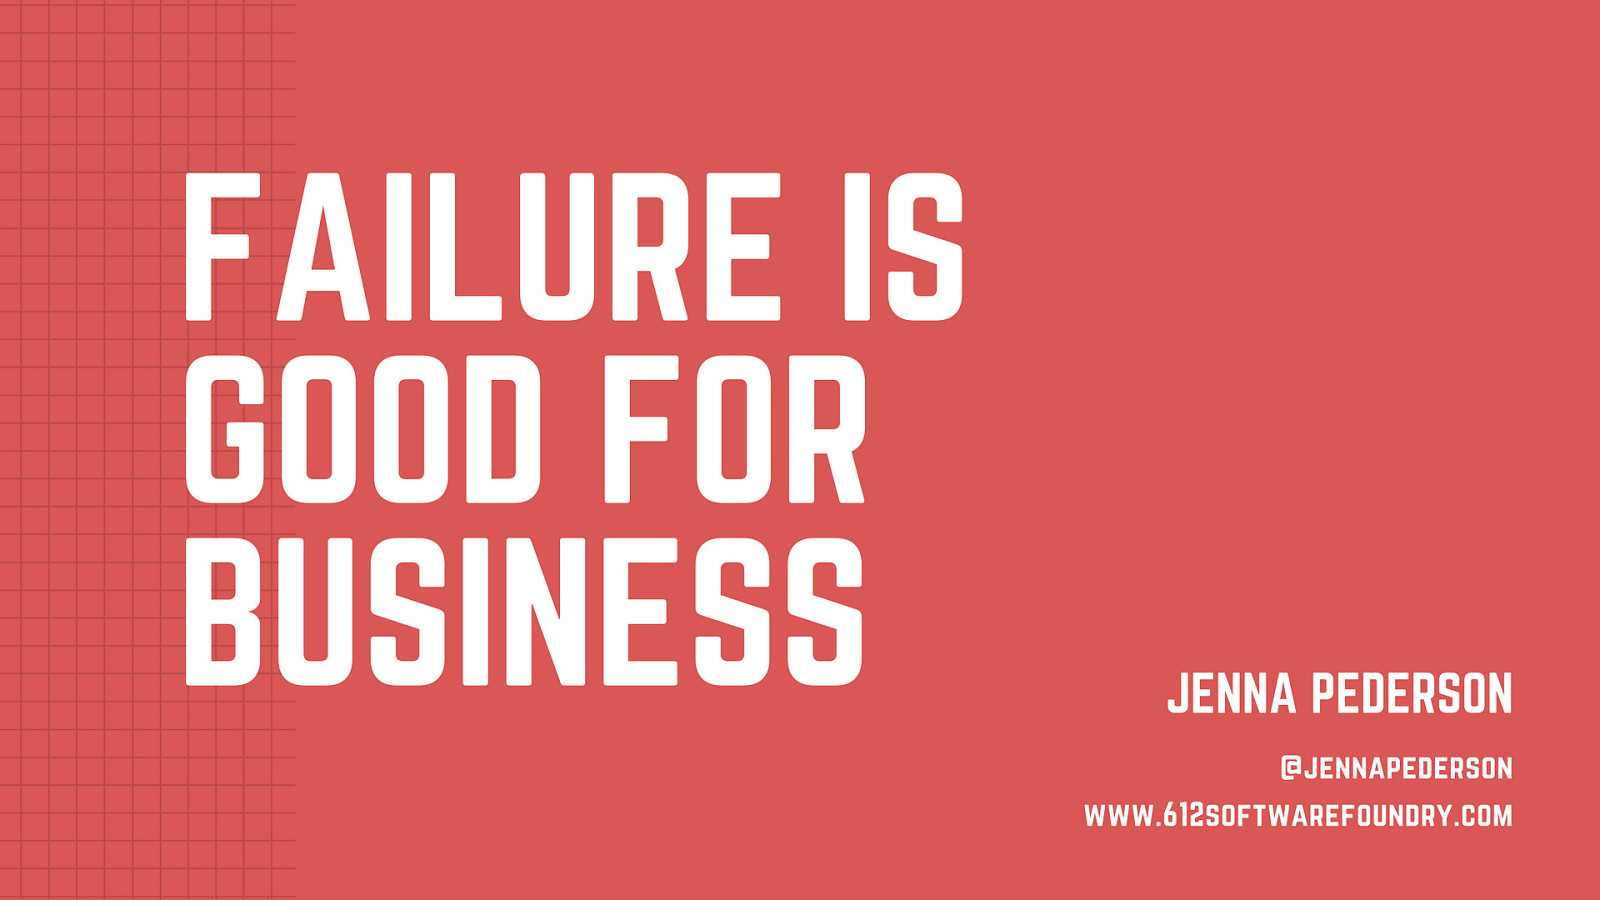 Failure is good for business